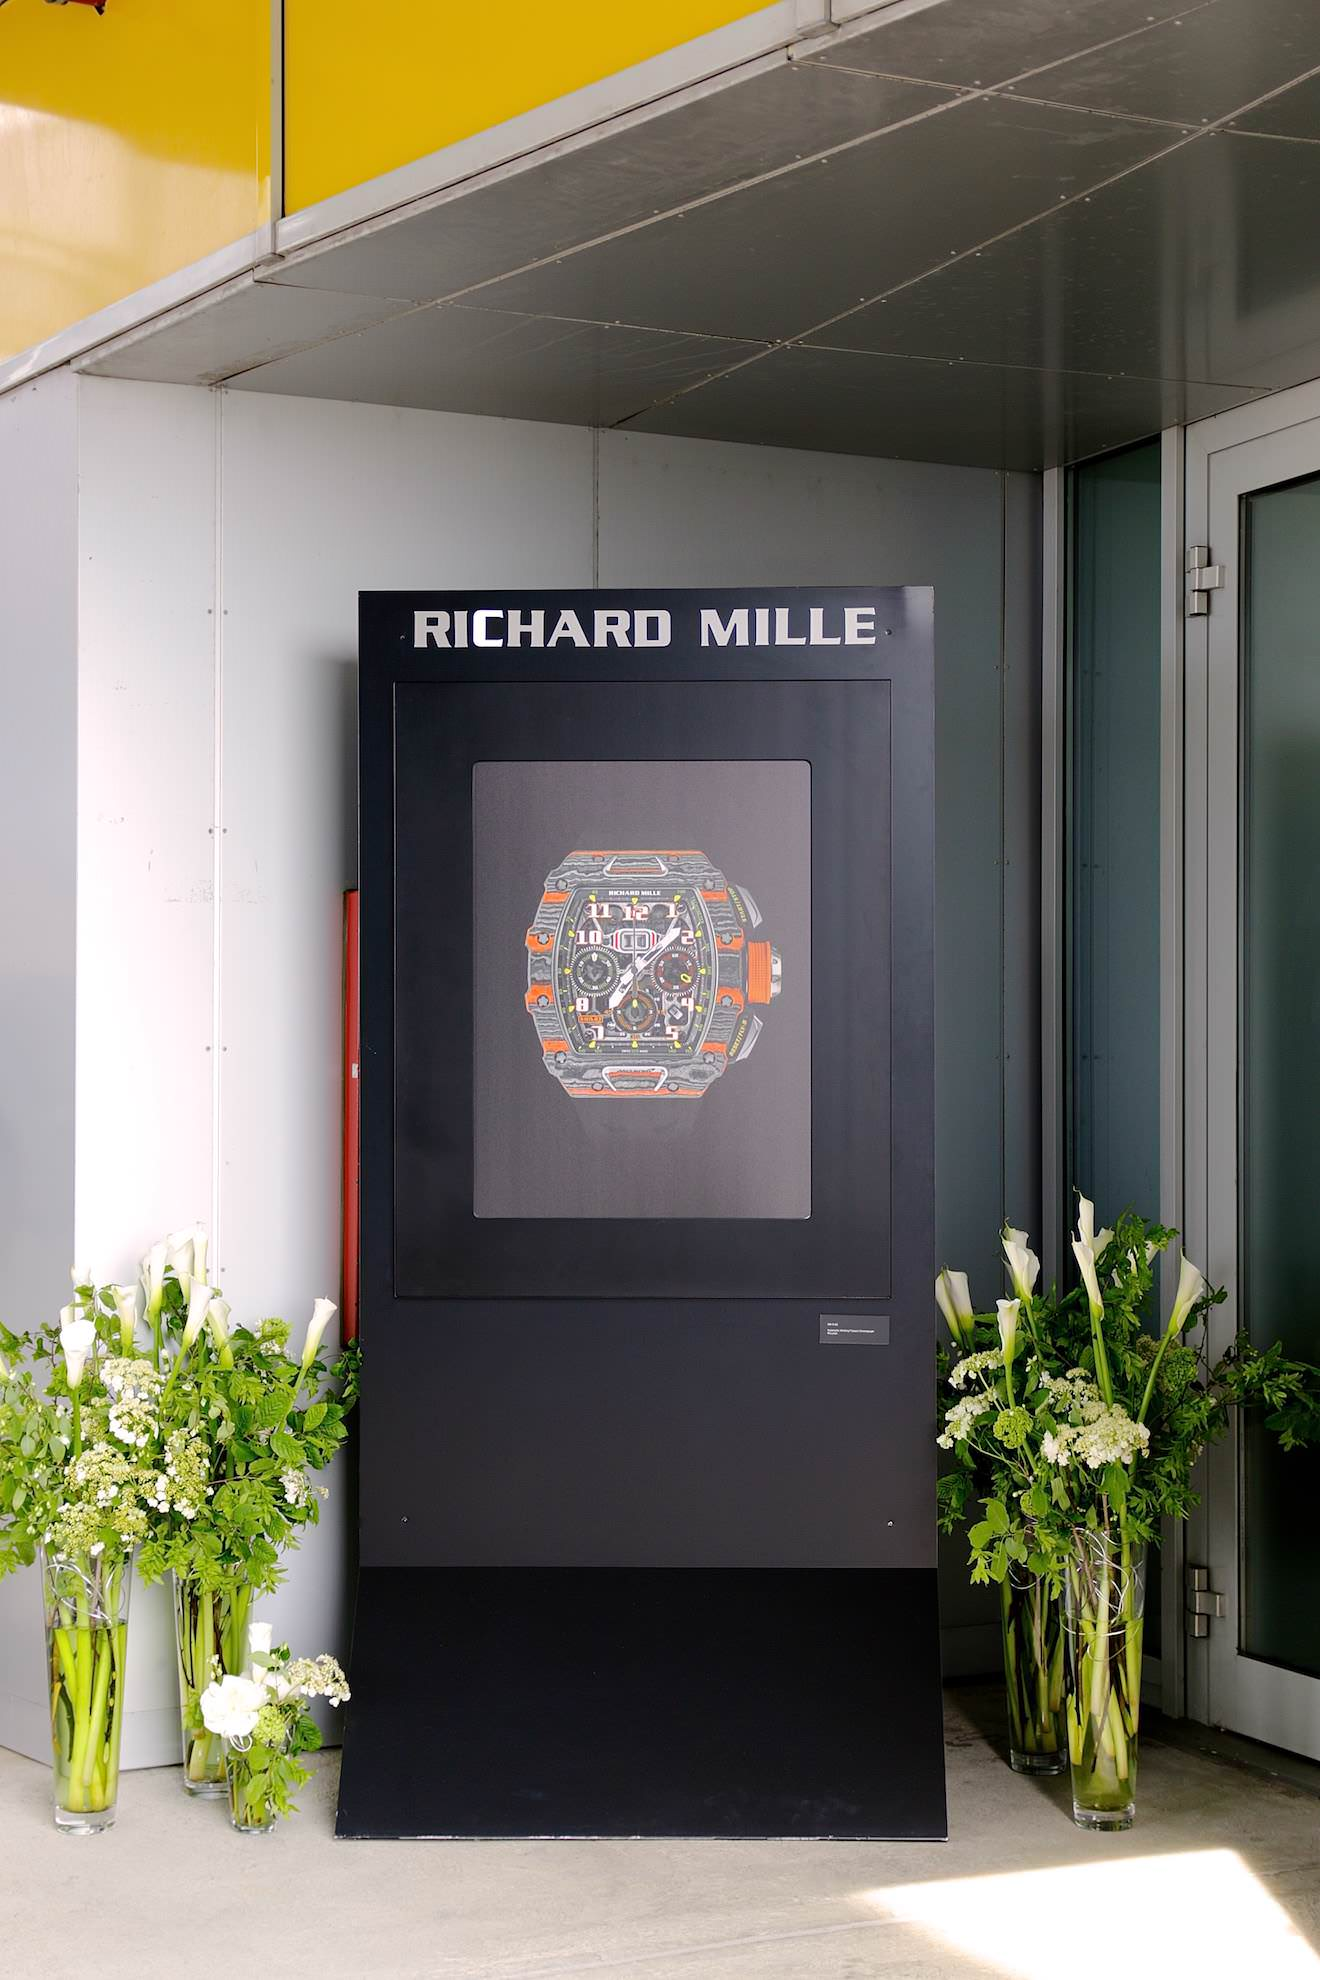 Richard Mille Nürburgring Classic 2019